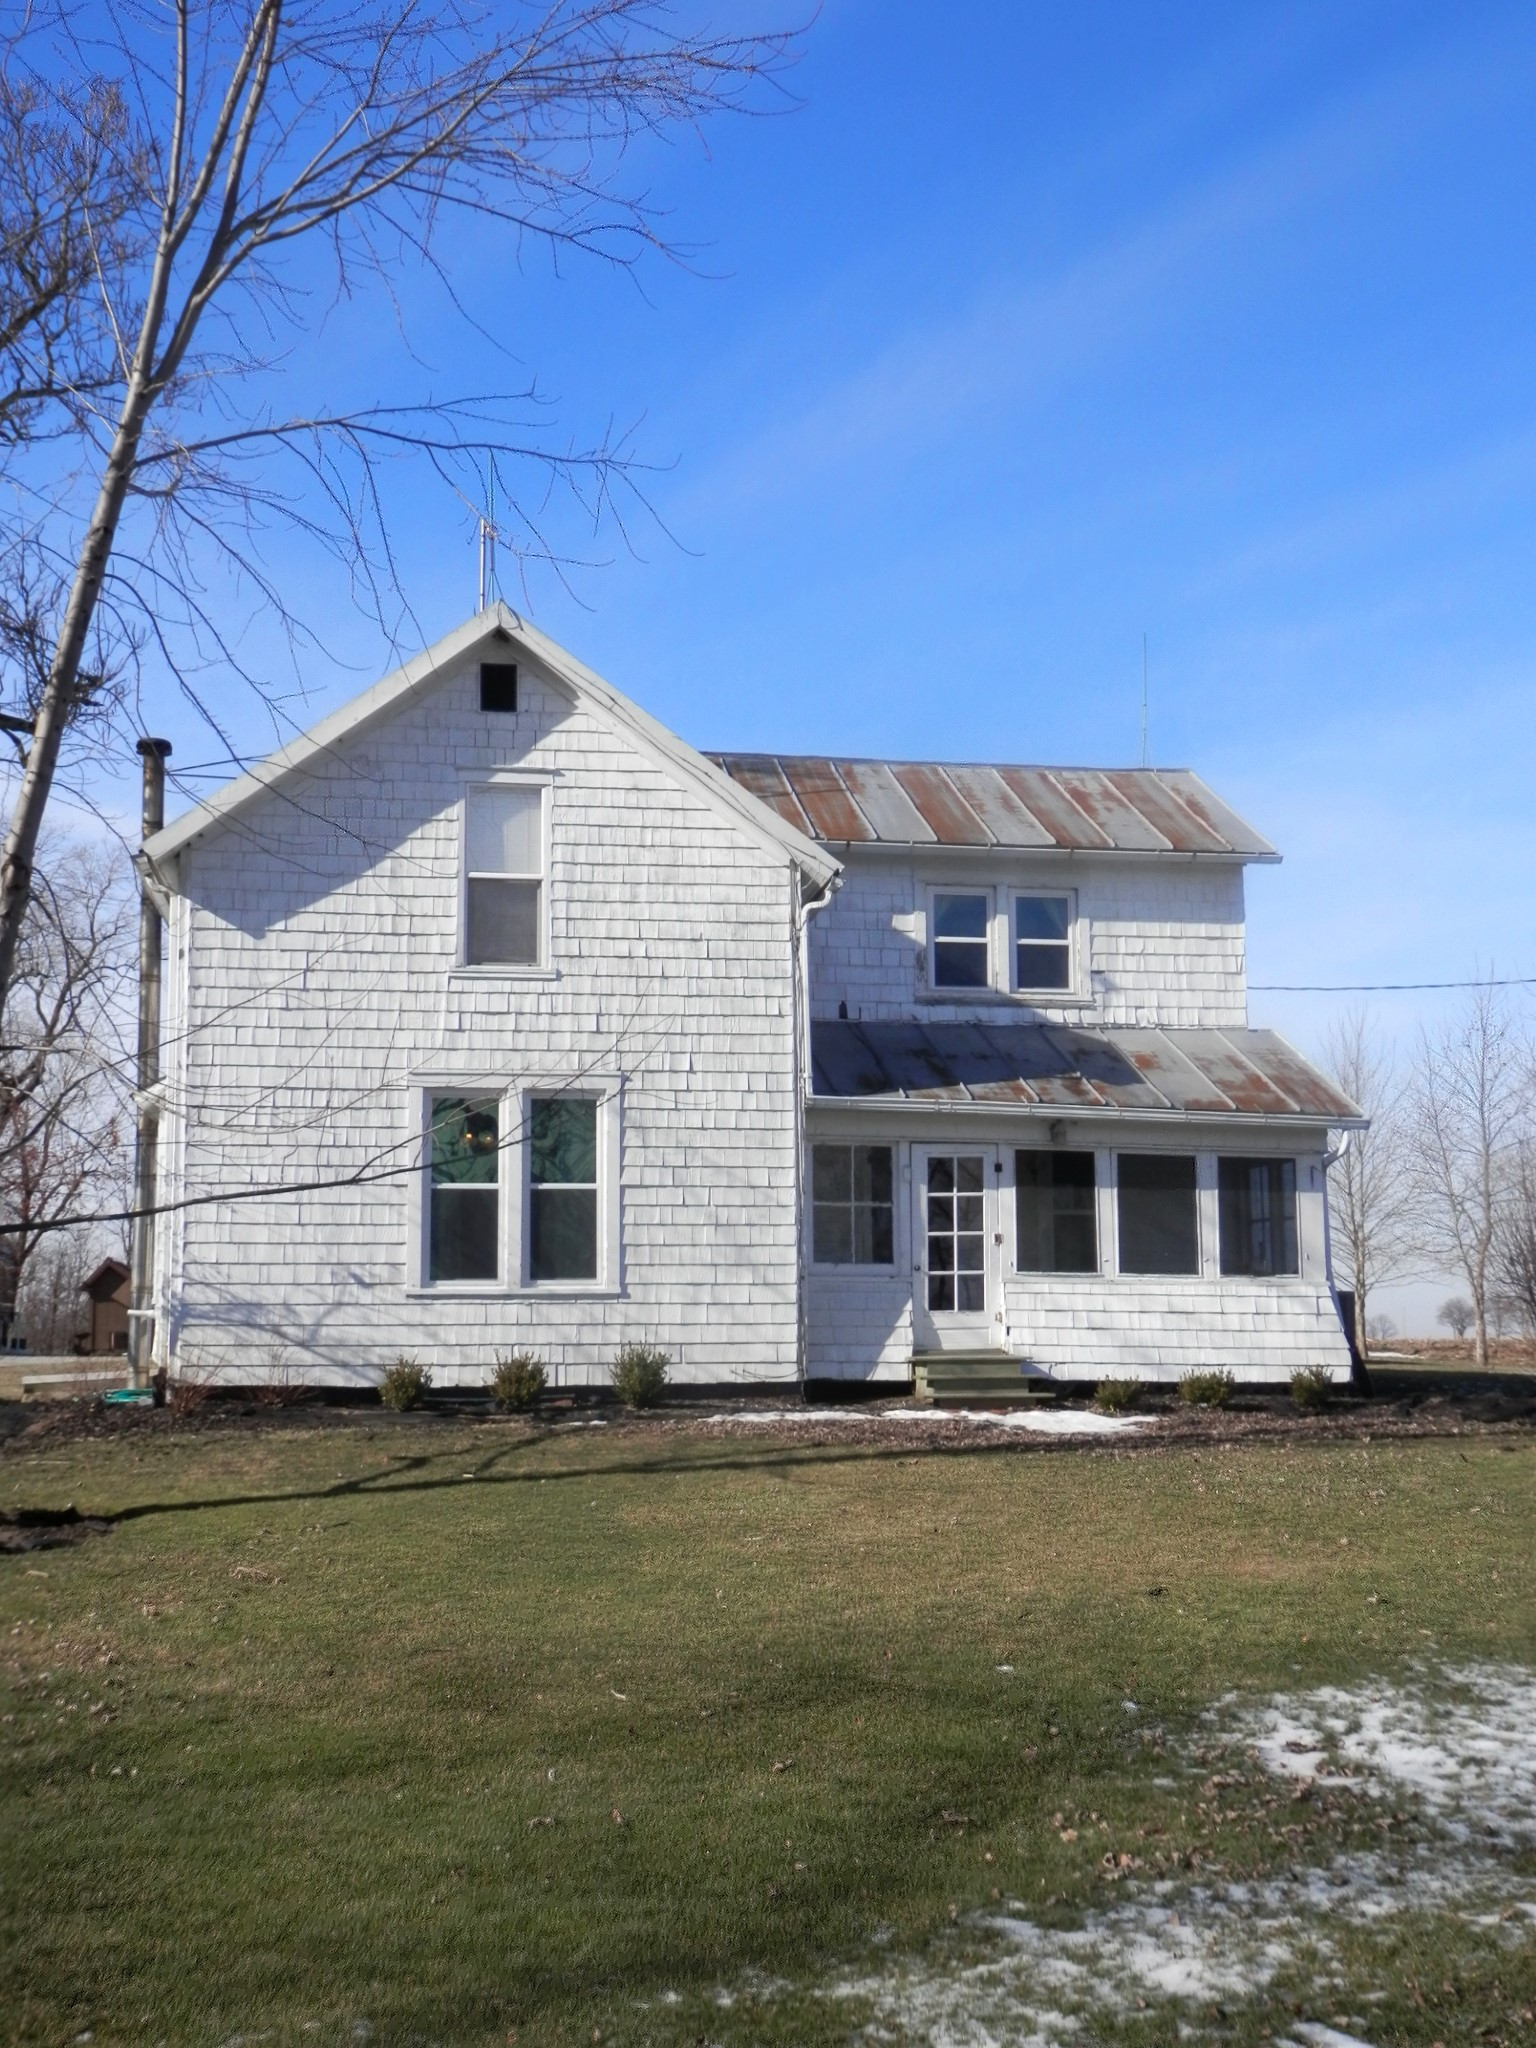 23206 Twp.Rd. 65, Forest, Ohio 45843